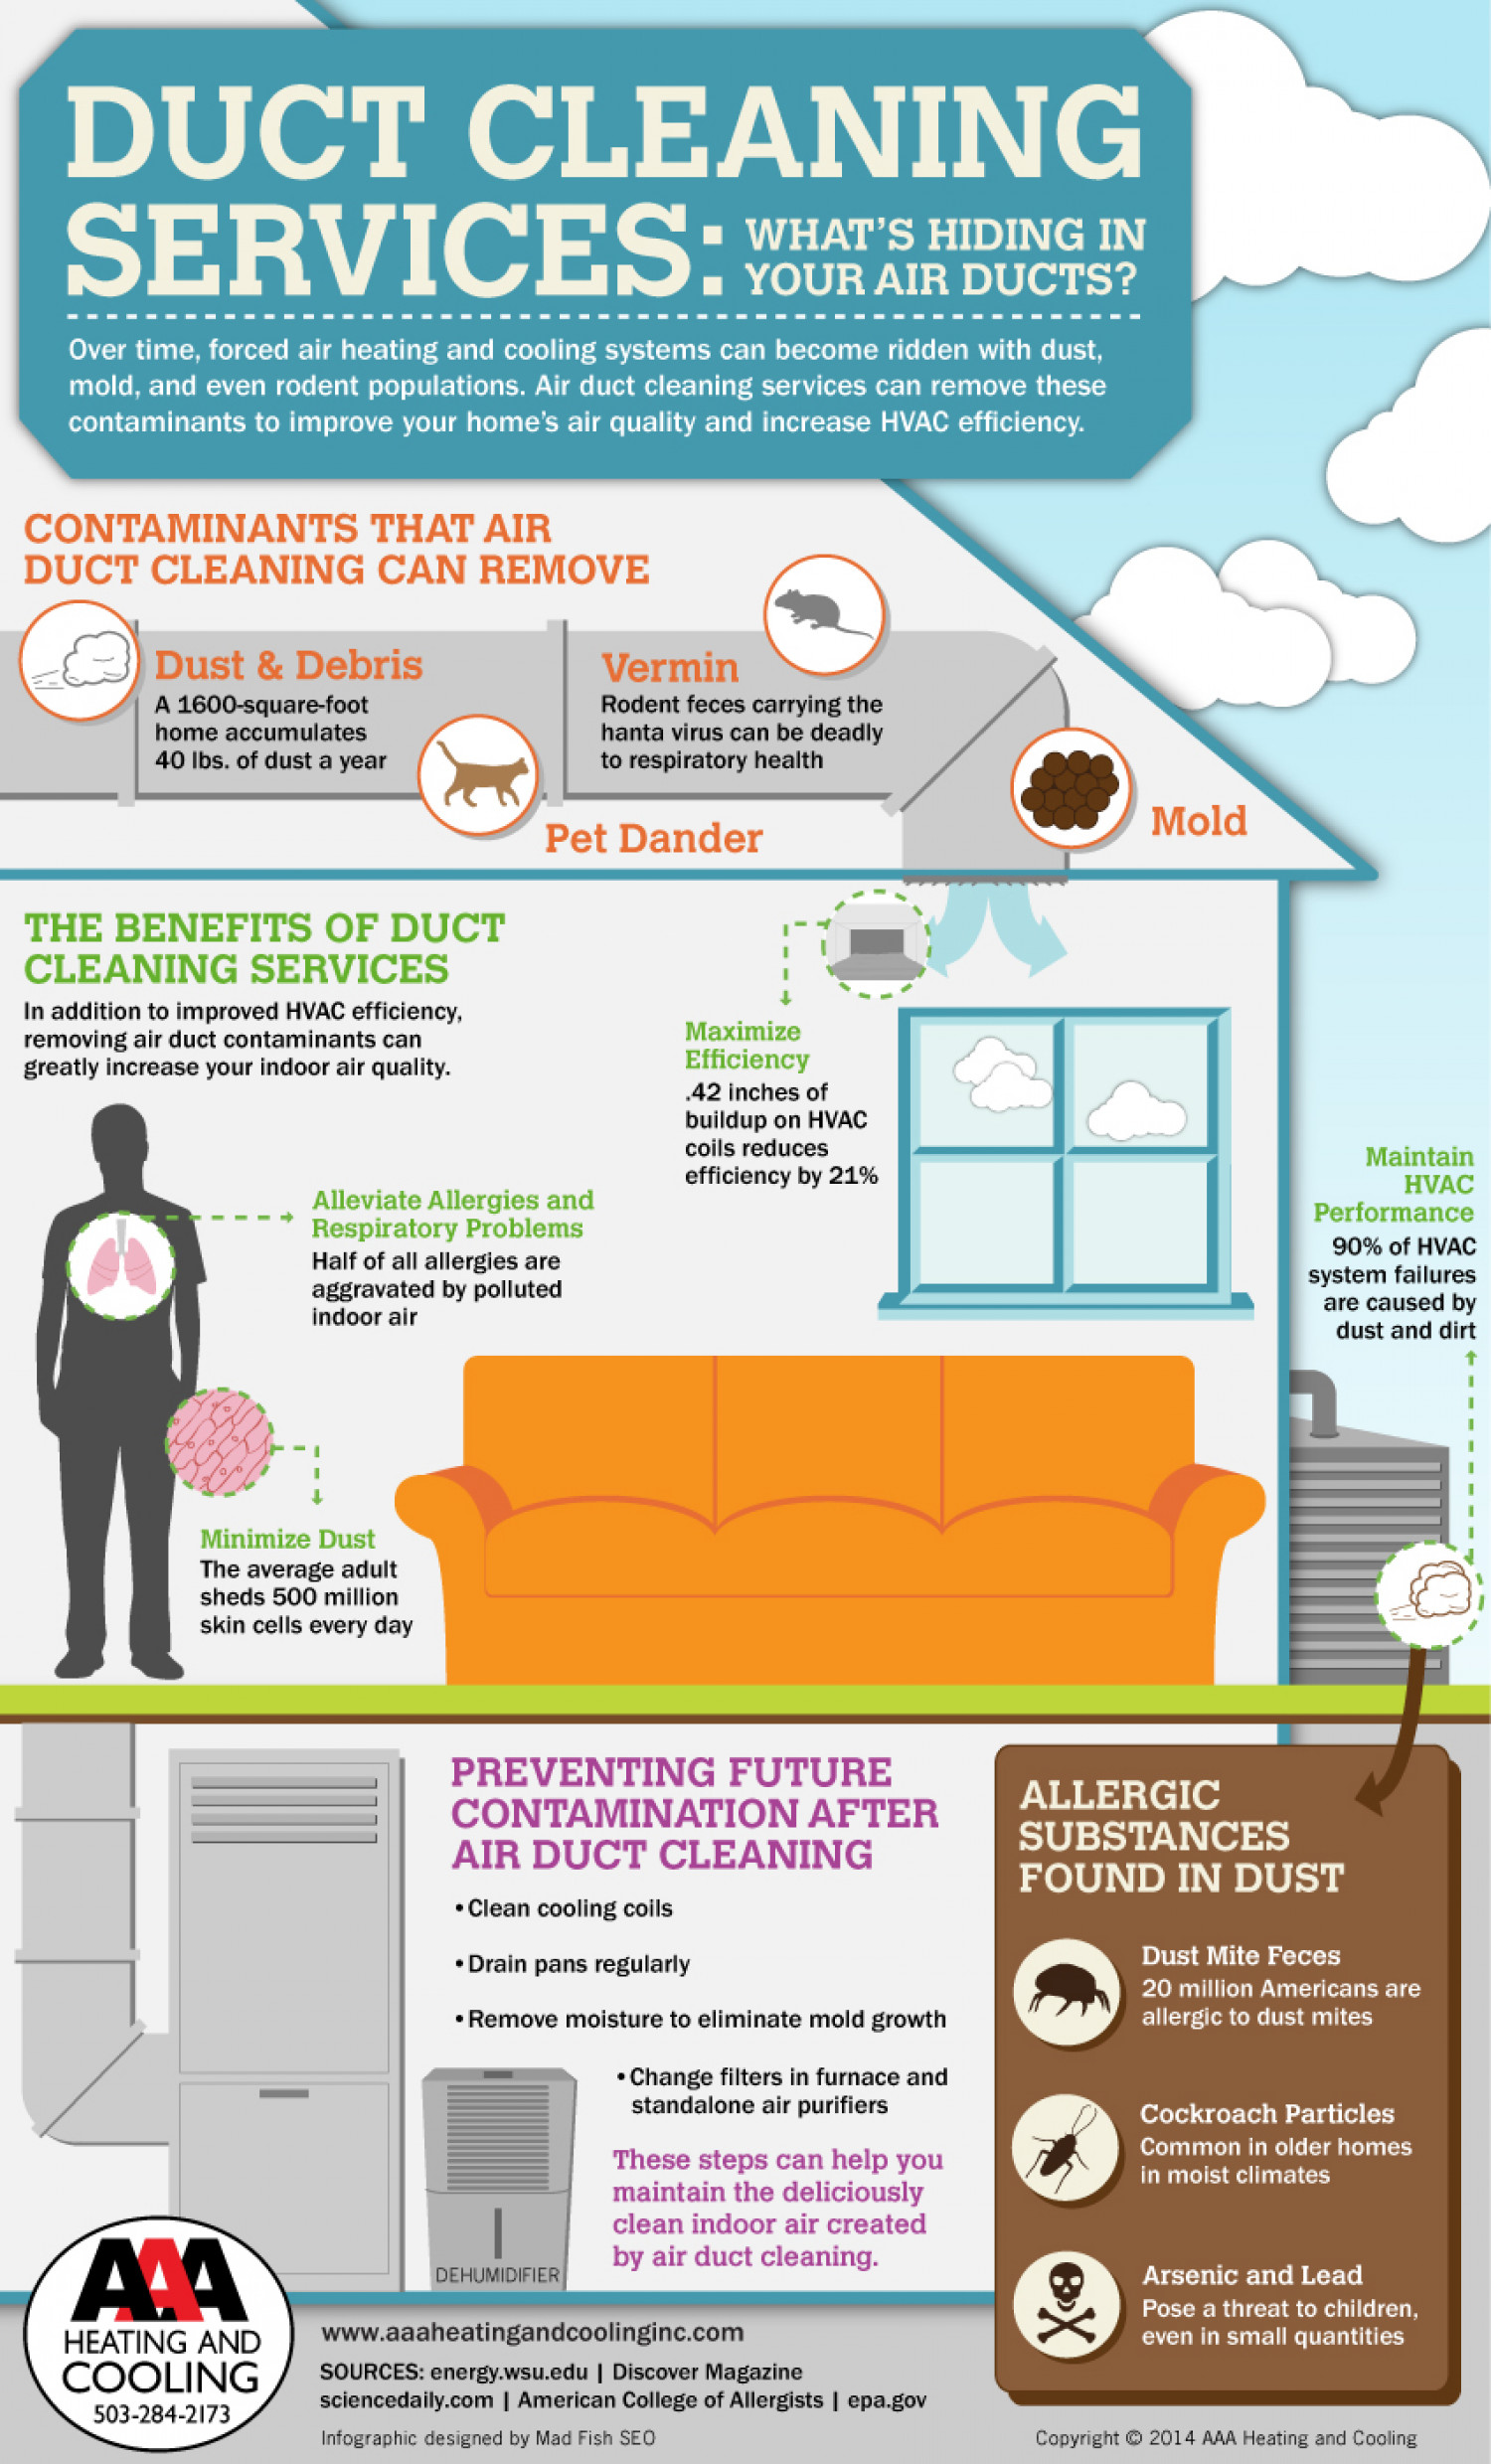 Duct Cleaning Services: What's Hiding in Your Air Ducts? Infographic